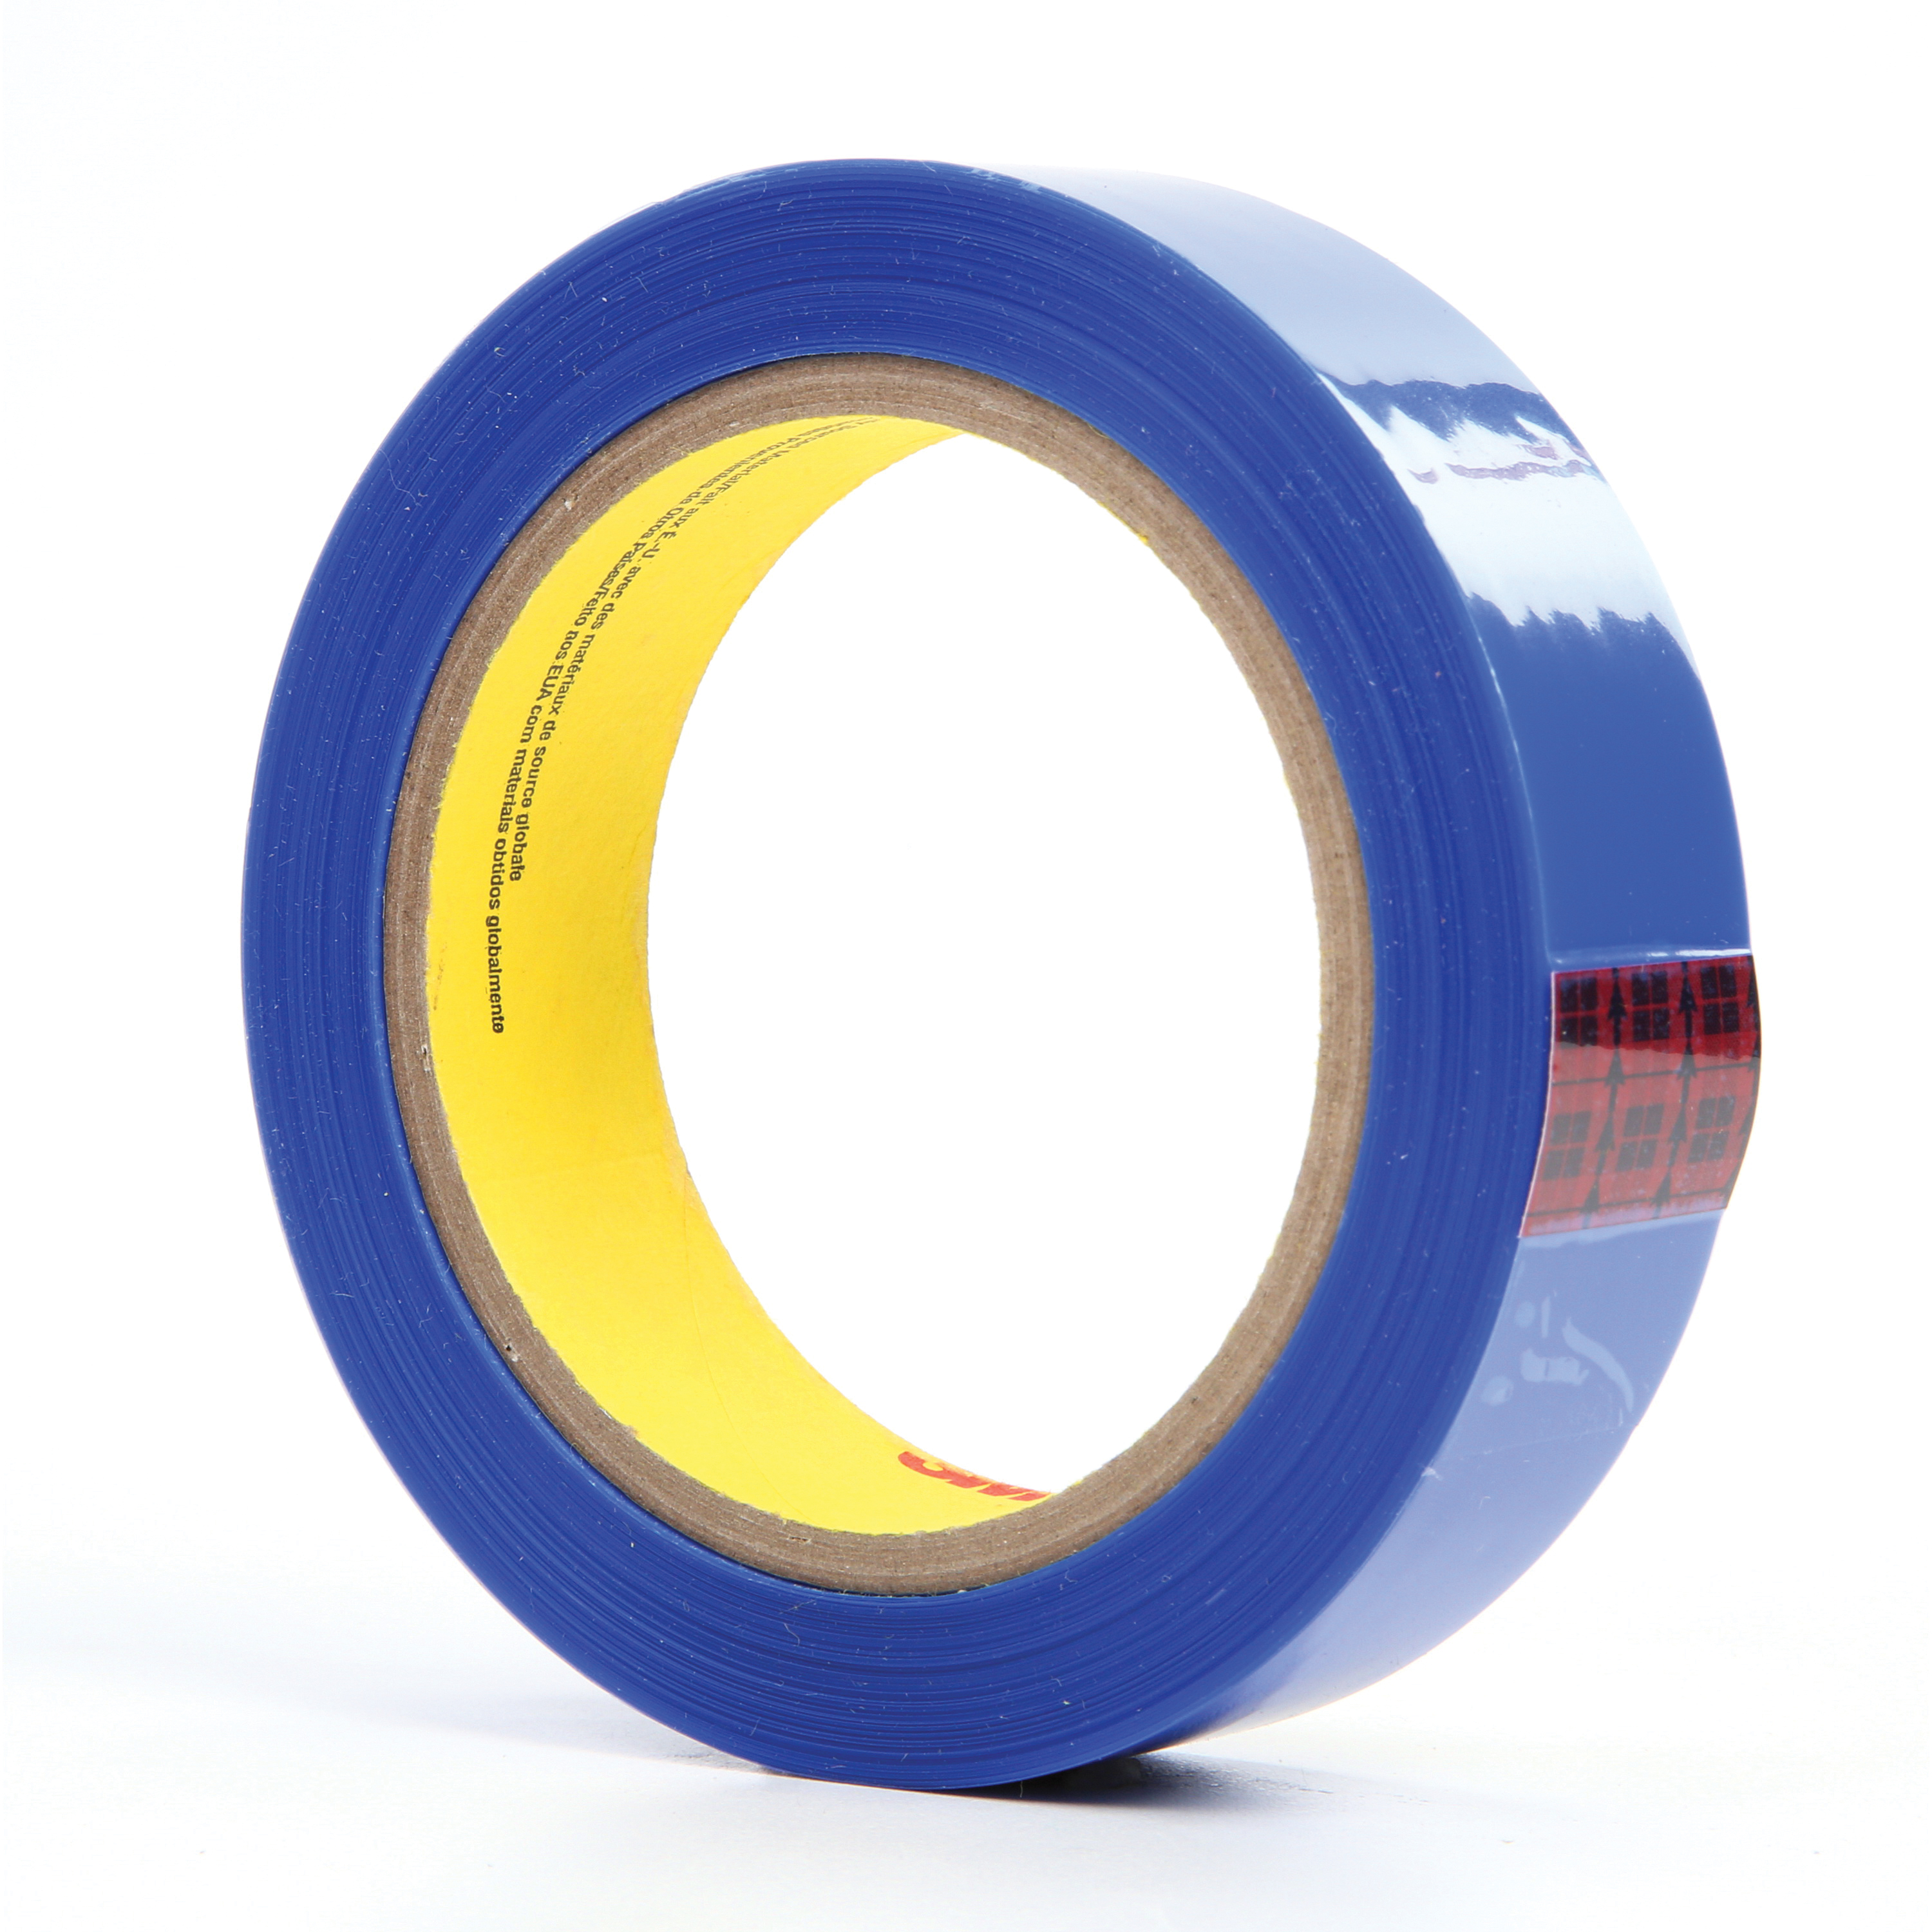 3M™ 051111-92767 High Strength Masking Tape, 72 yd L x 1 in W, 2.4 mil THK, Silicon Adhesive, Polyester Backing